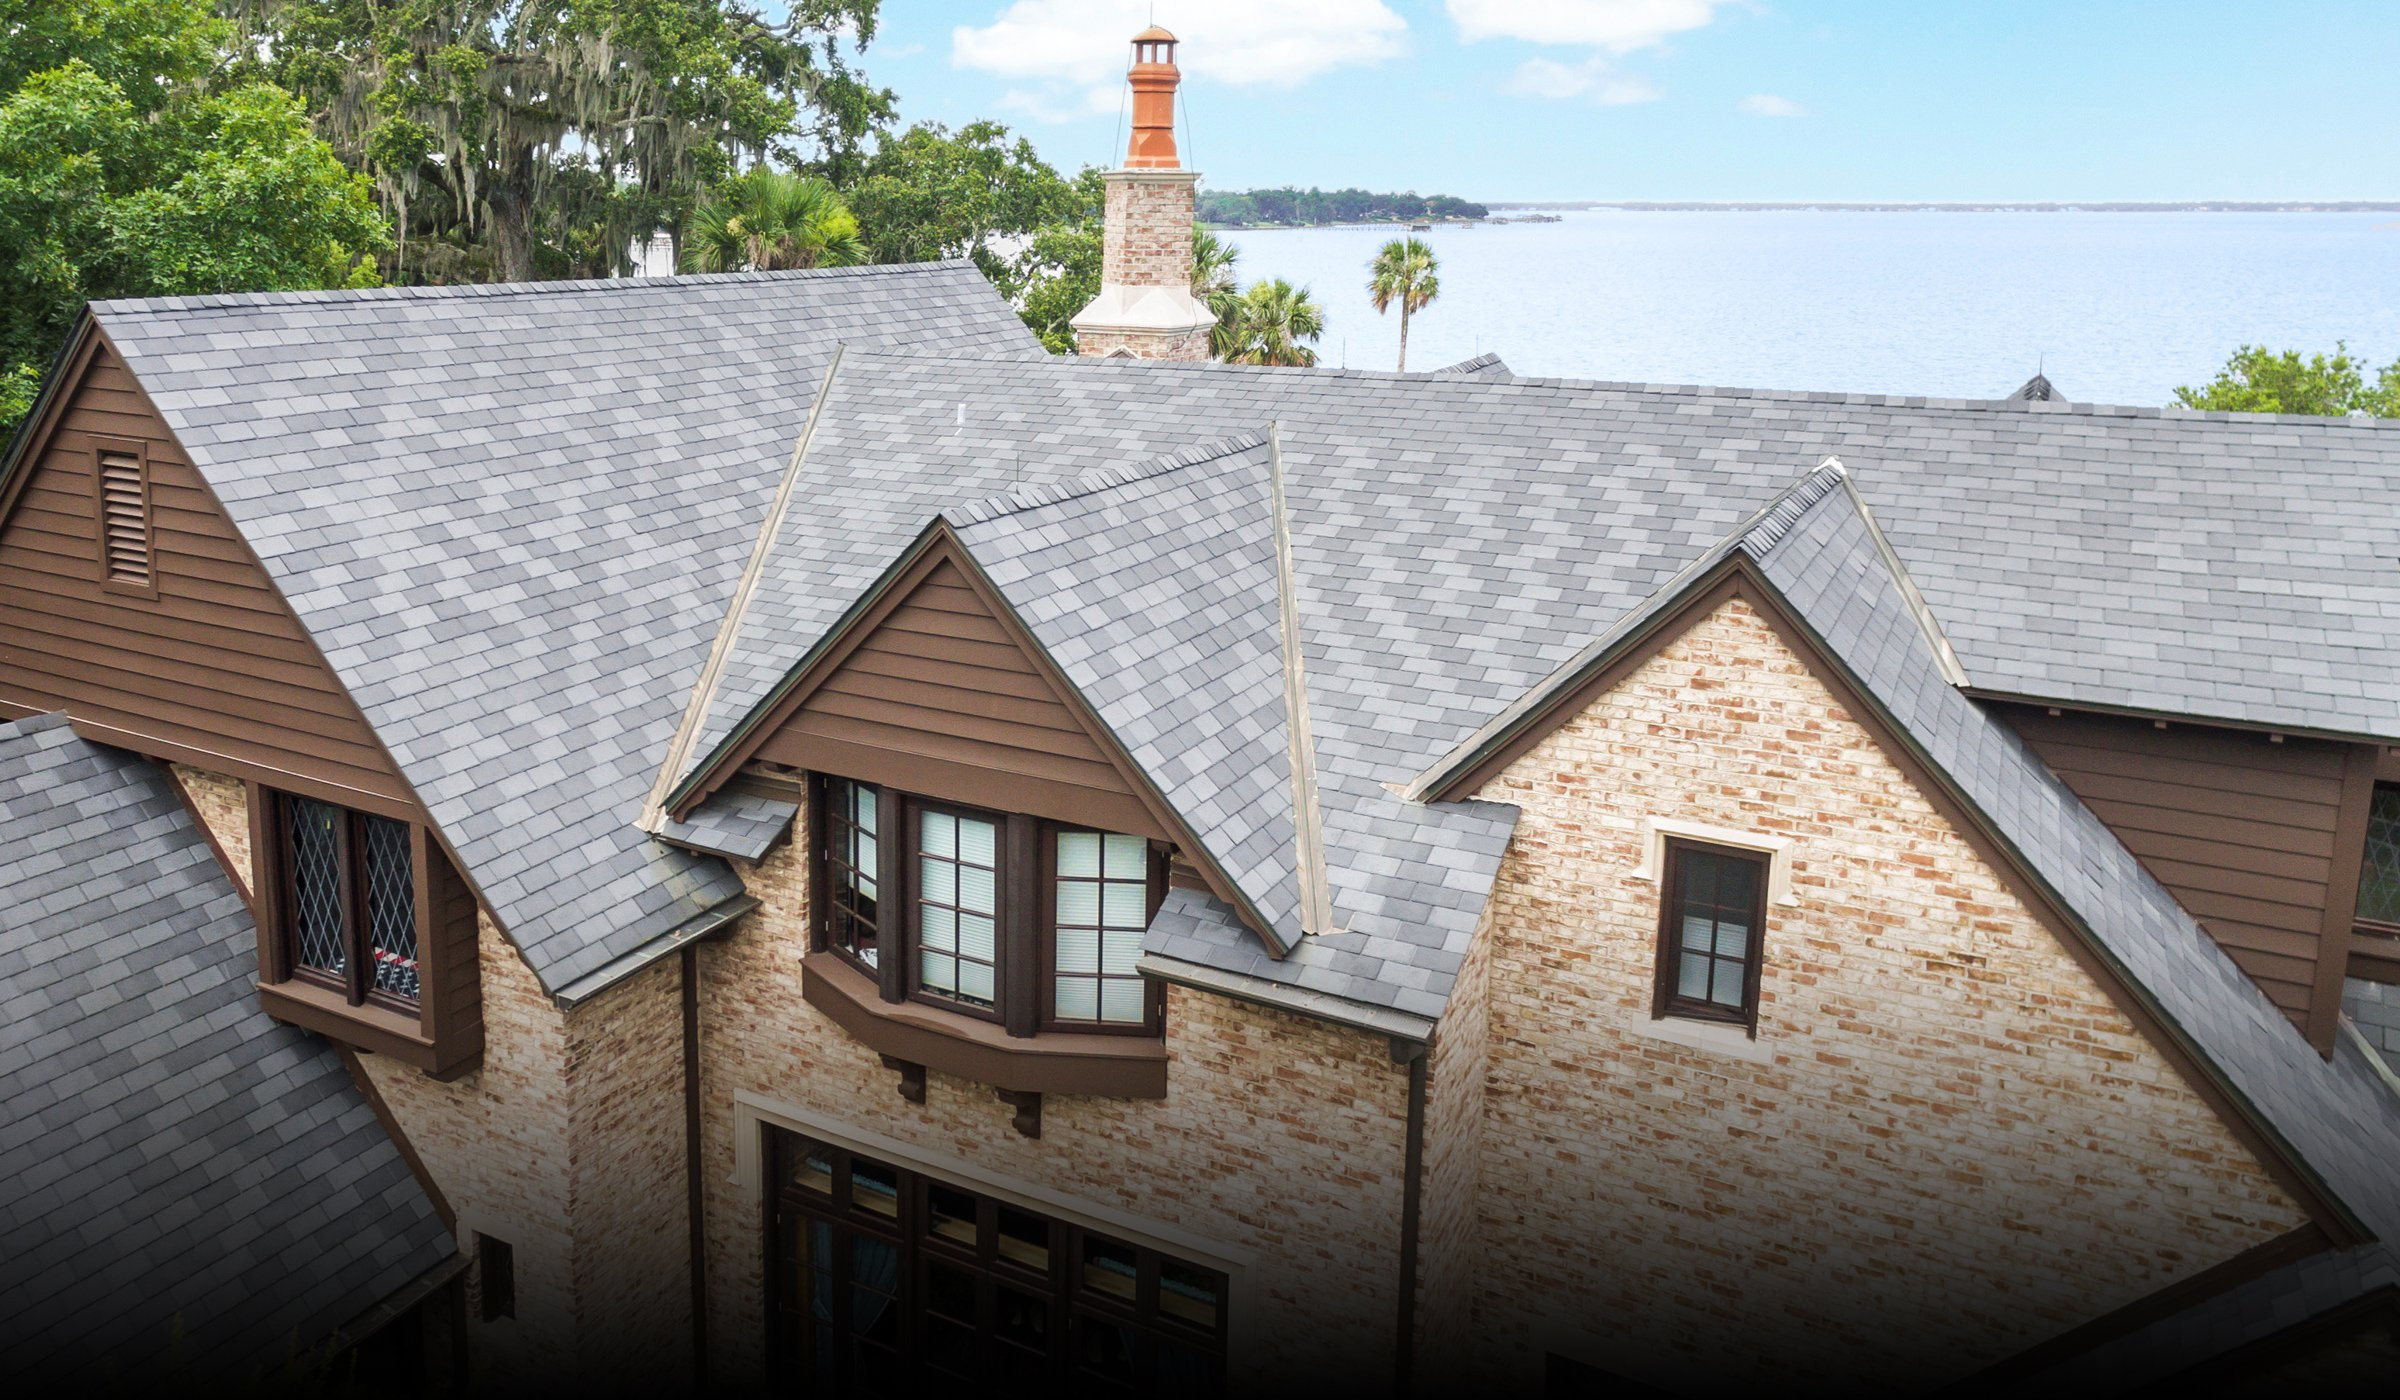 Synthetic Slate and Cedar Shake Roofing Products | EcoStar